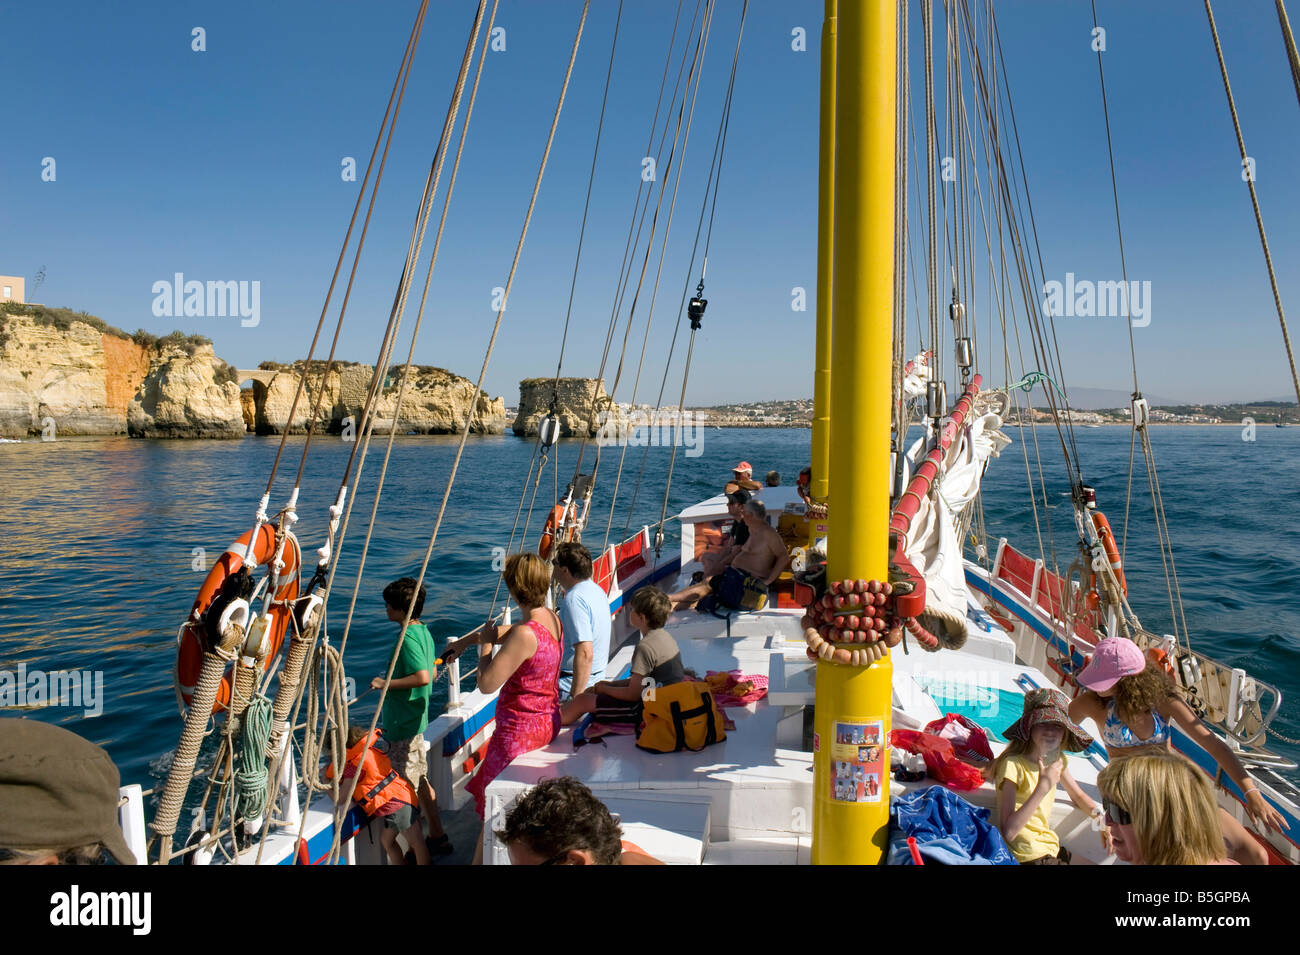 Algarve Portugal Ponta da Piedade  ,Lagos. Algarve, Portugal. Bridge of Piety , Sailing, Boat trips - Stock Image